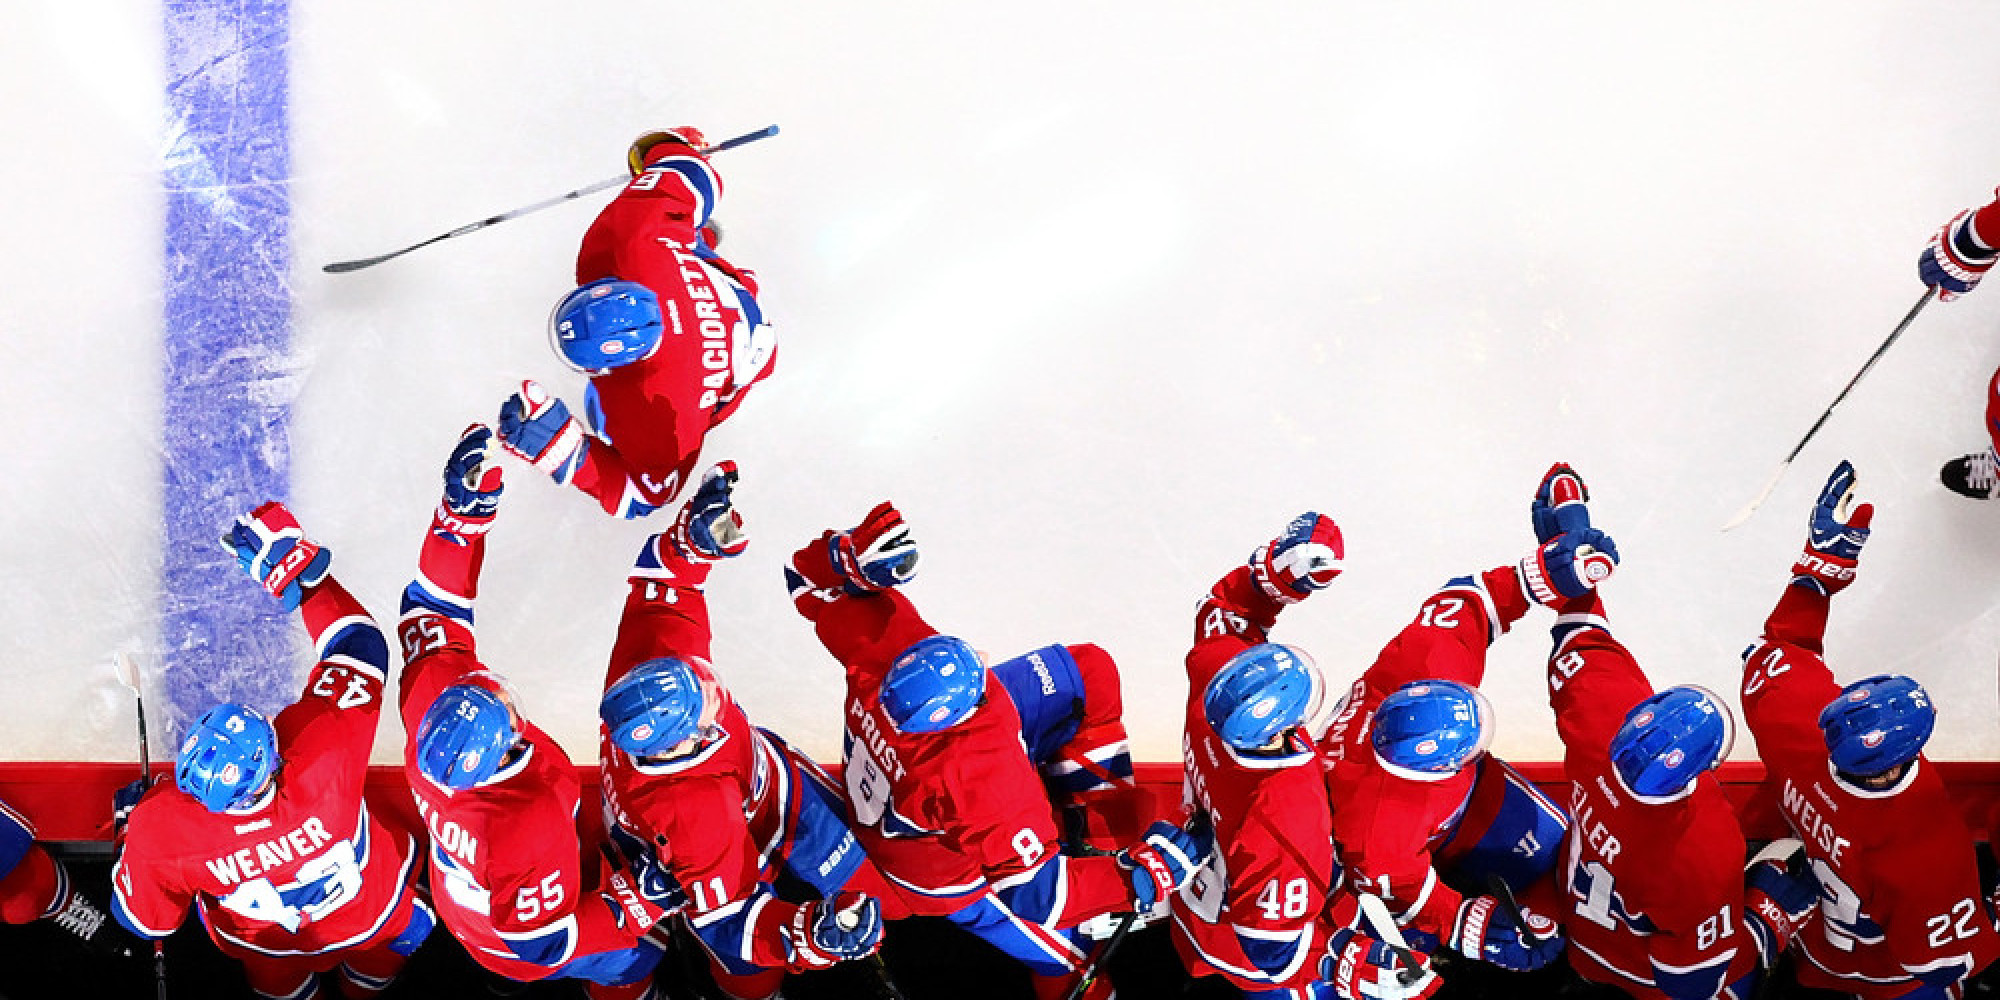 Amazing Wallpaper Logo Montreal Canadiens - Pacioretty_Celebration  Pic_526039.jpg